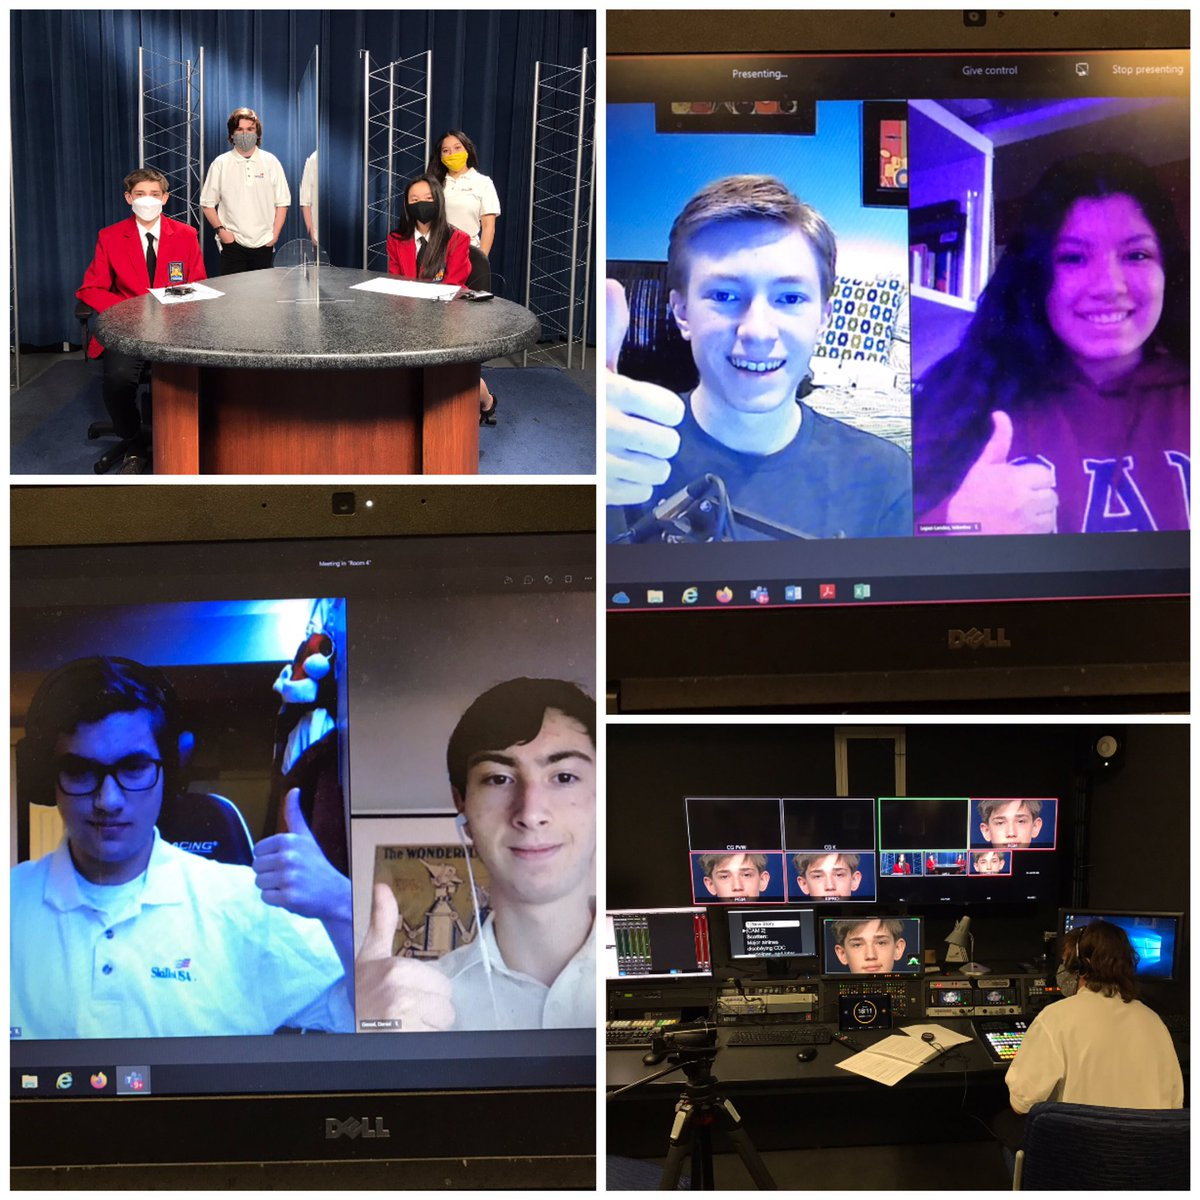 TV Production students are representing Arlington in the SkillsUSA State Championships.<a target='_blank' href='http://twitter.com/CharlesRandolp3'>@CharlesRandolp3</a> <a target='_blank' href='http://twitter.com/Margaretchungcc'>@Margaretchungcc</a> <a target='_blank' href='http://twitter.com/arlingtontechcc'>@arlingtontechcc</a> <a target='_blank' href='https://t.co/po2ZA3l9yc'>https://t.co/po2ZA3l9yc</a>